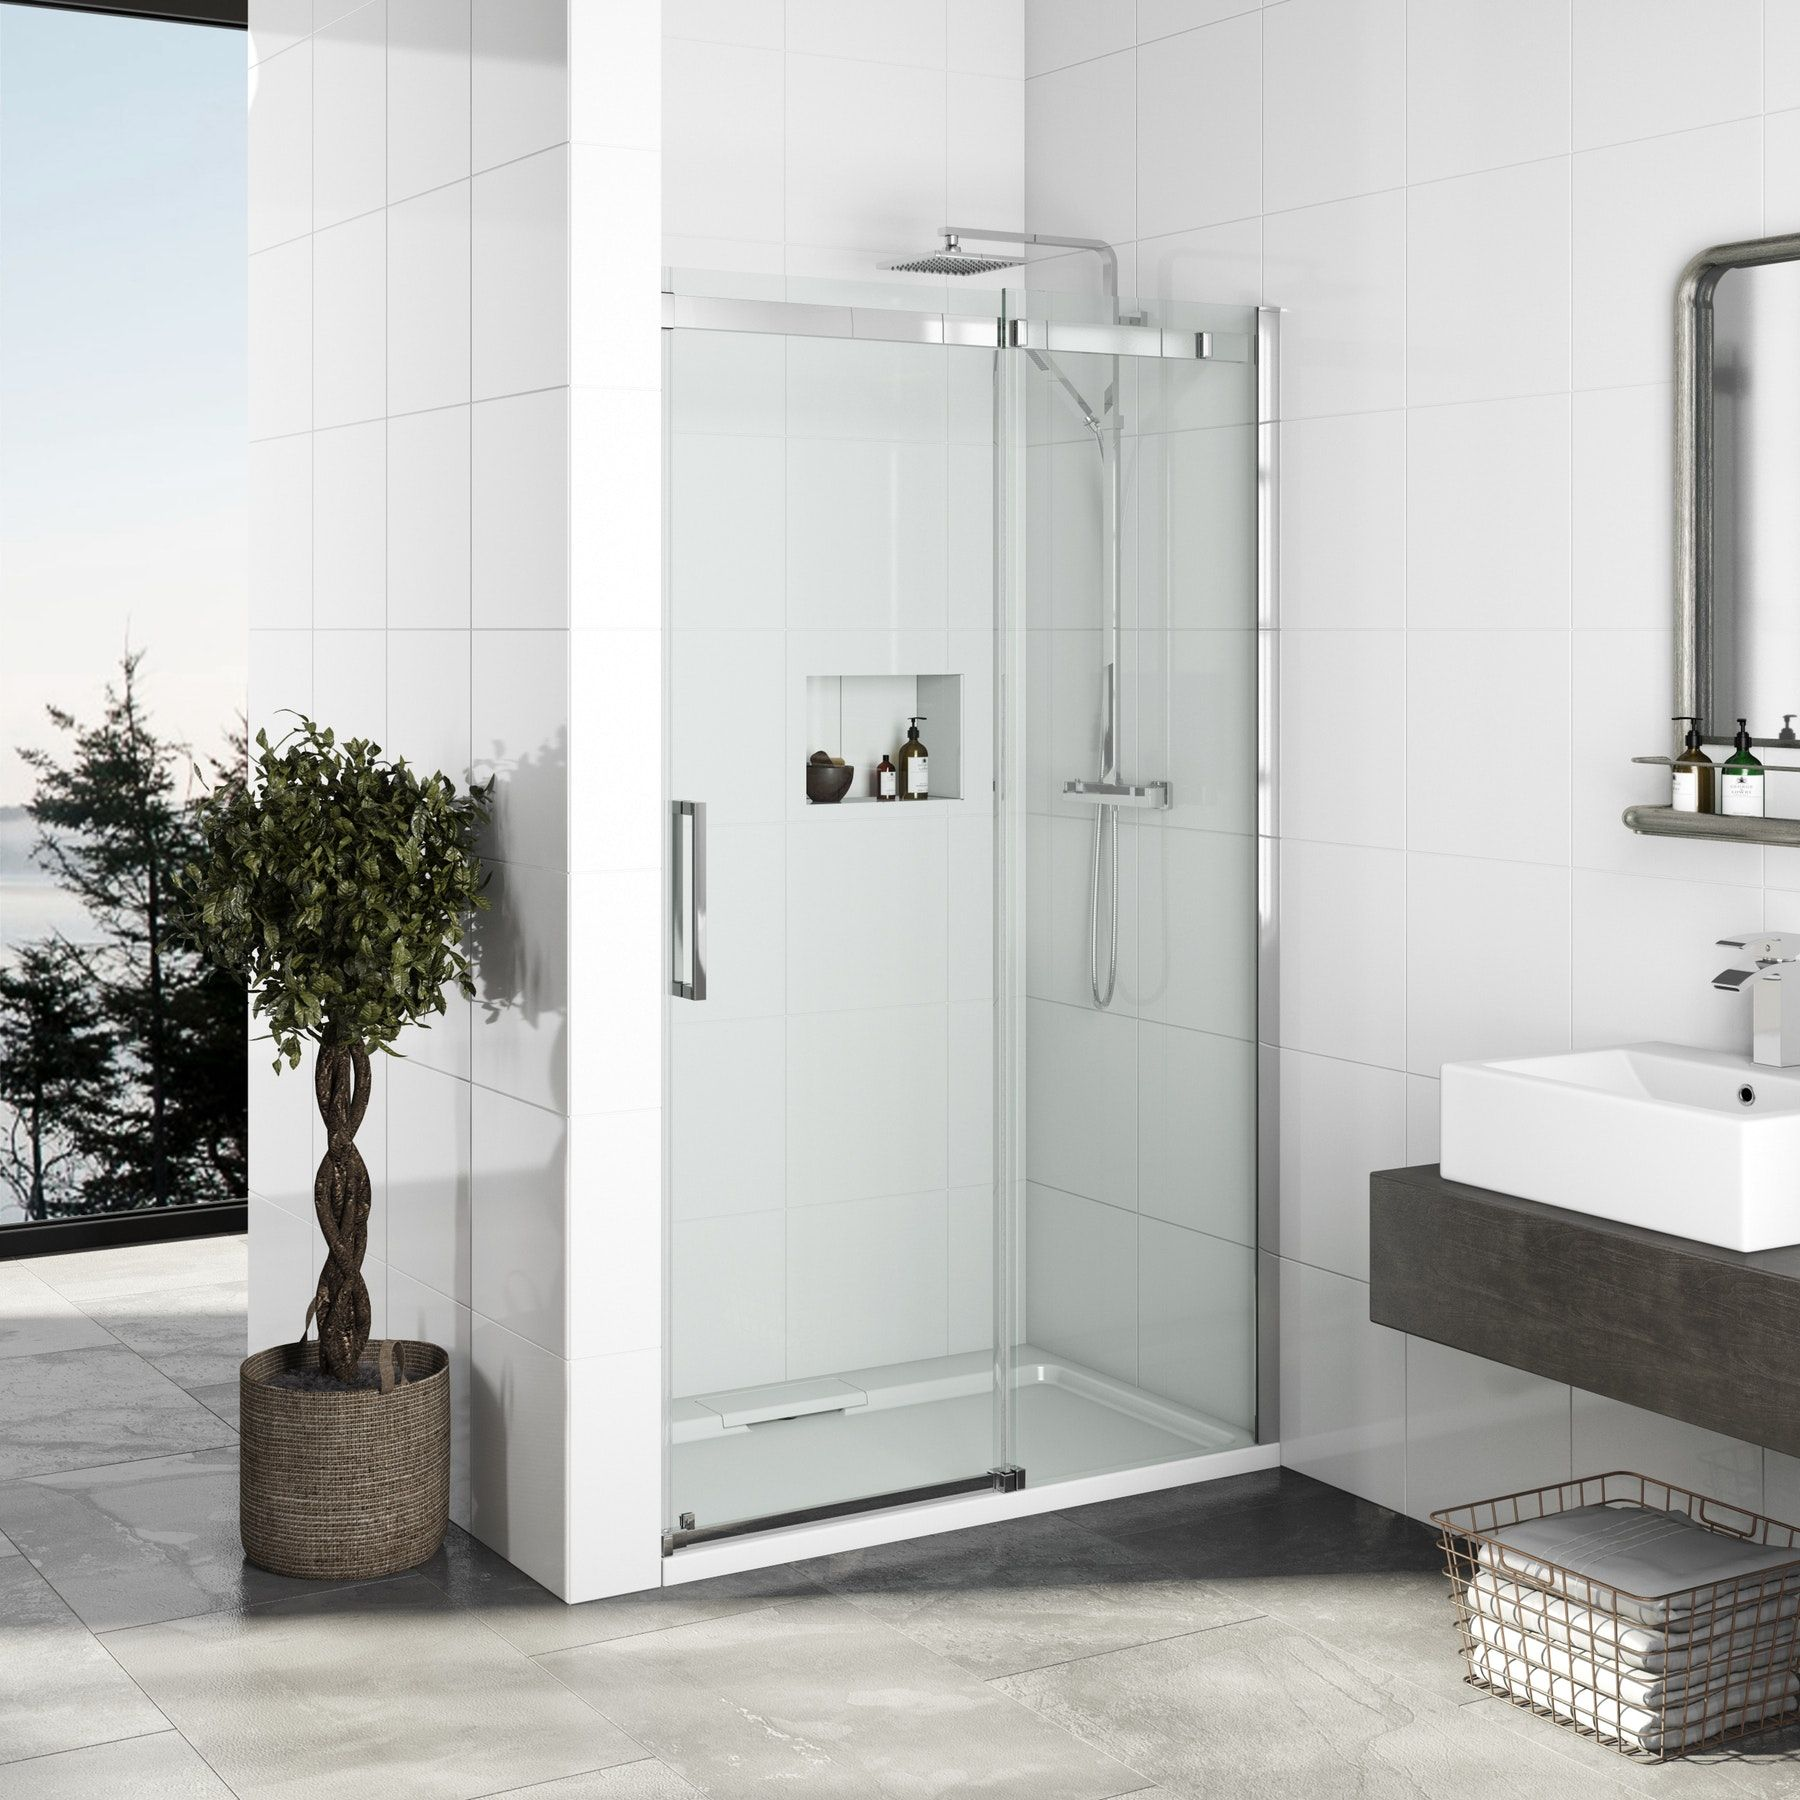 Mode Elite 10mm Frameless Sliding Shower Door 1200mm Shower Doors Frameless Sliding Shower Doors Sliding Shower Door